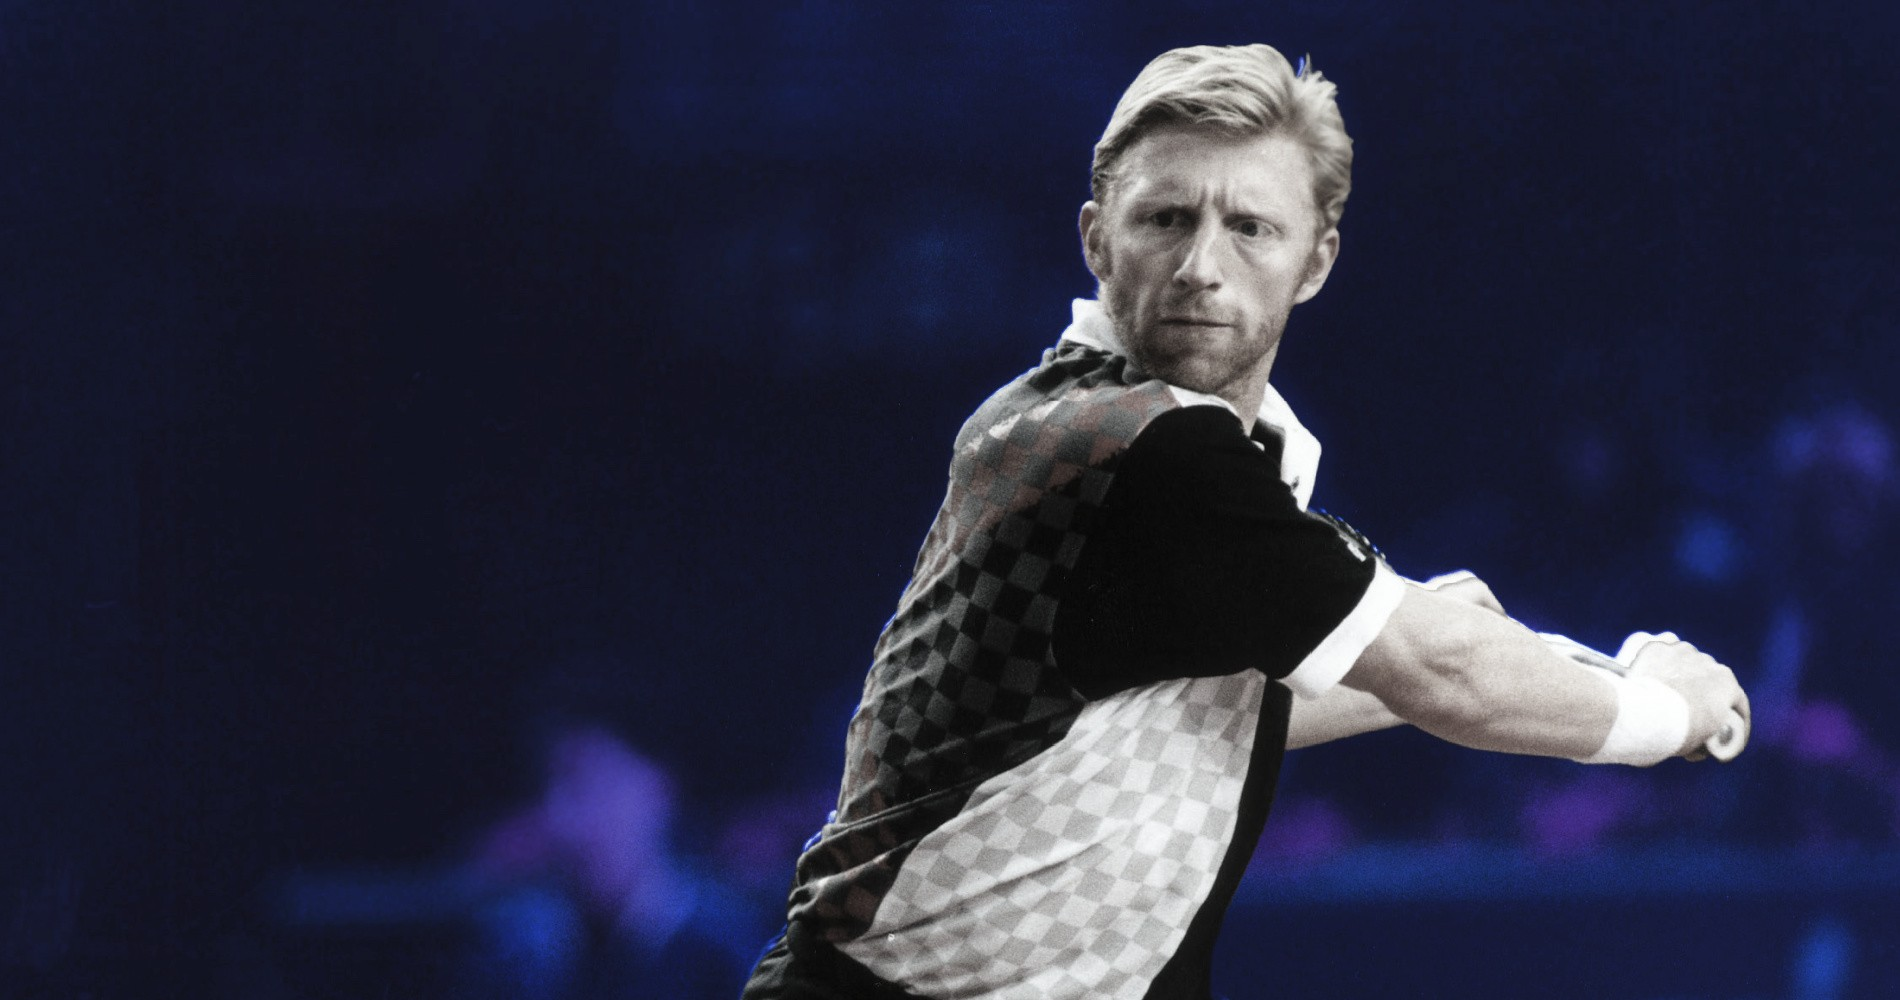 Boris Becker - On this day